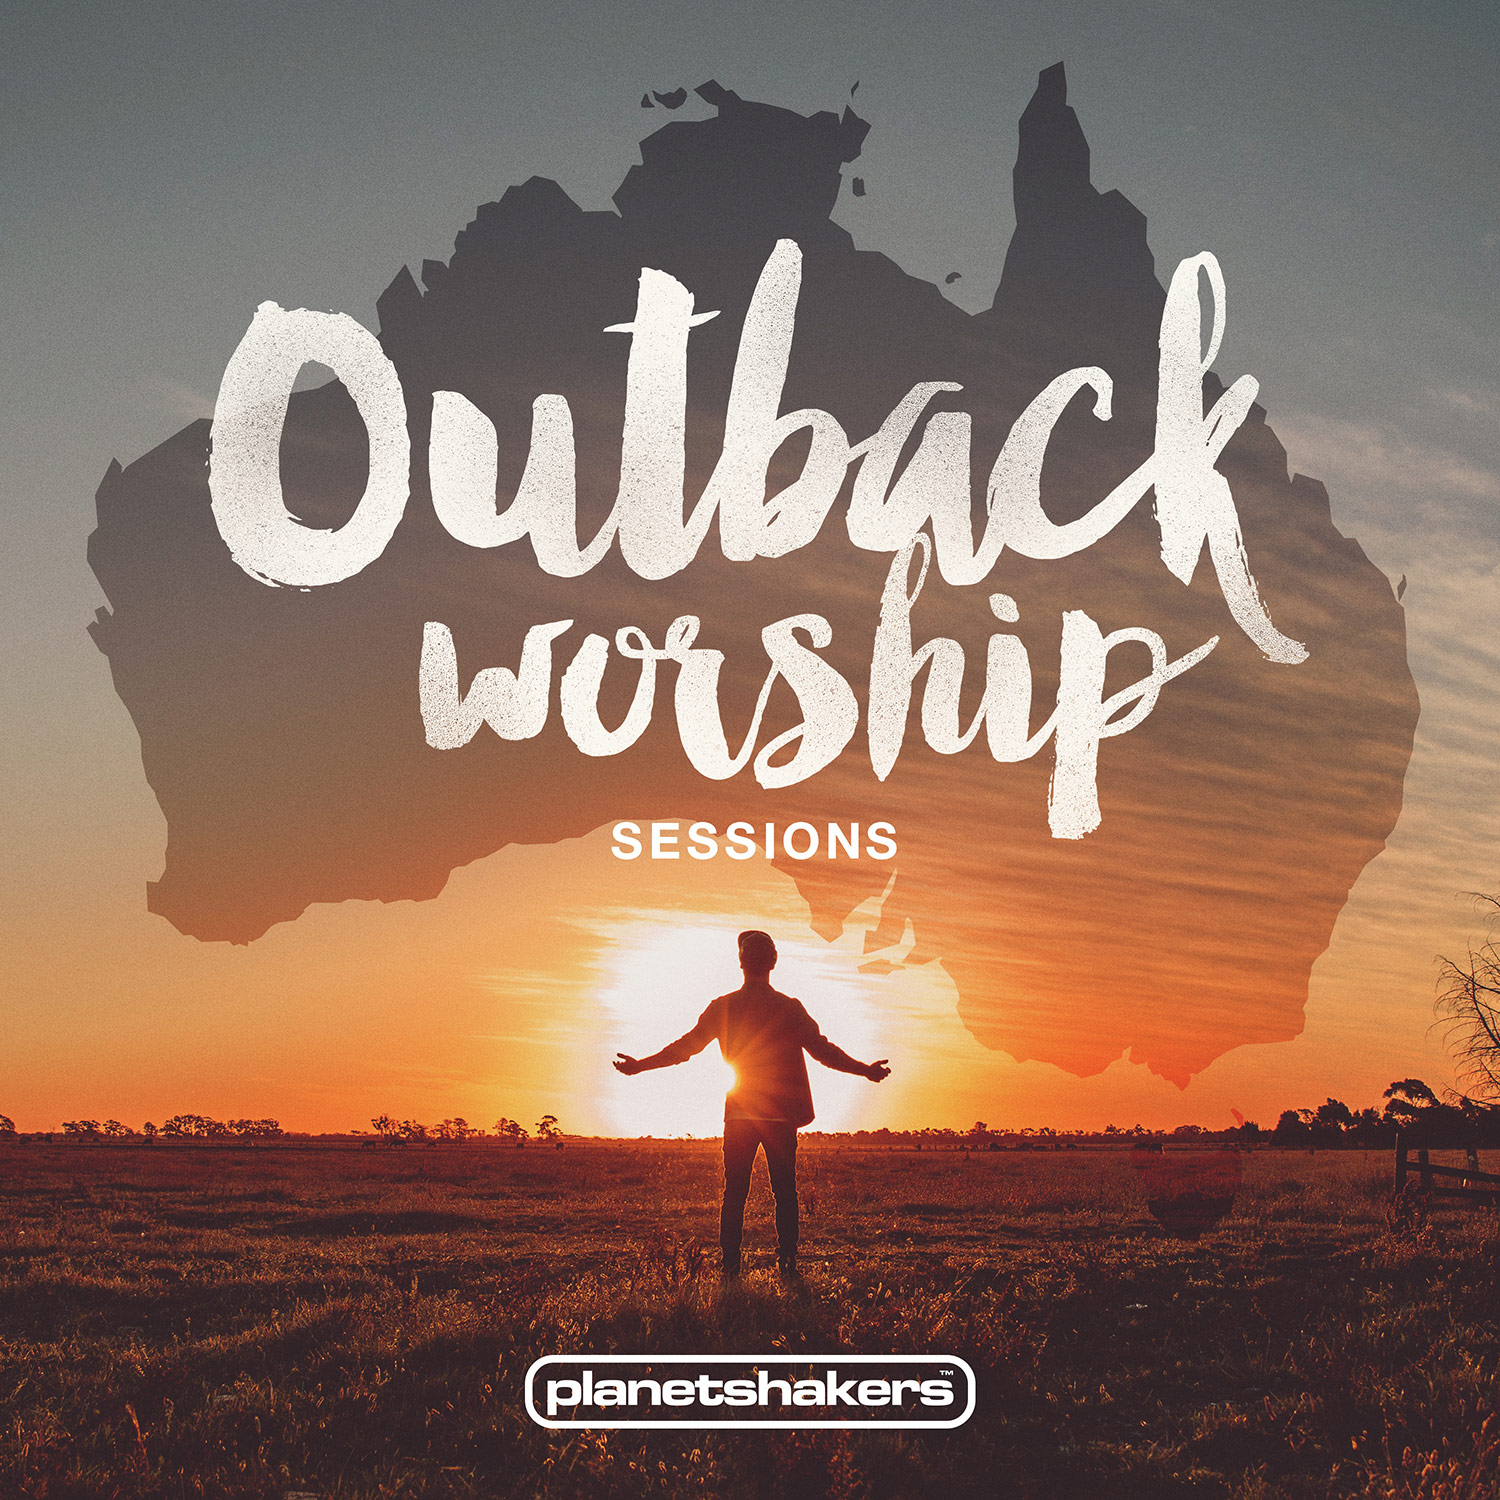 Amazon. Com: send me: planetshakers: mp3 downloads.